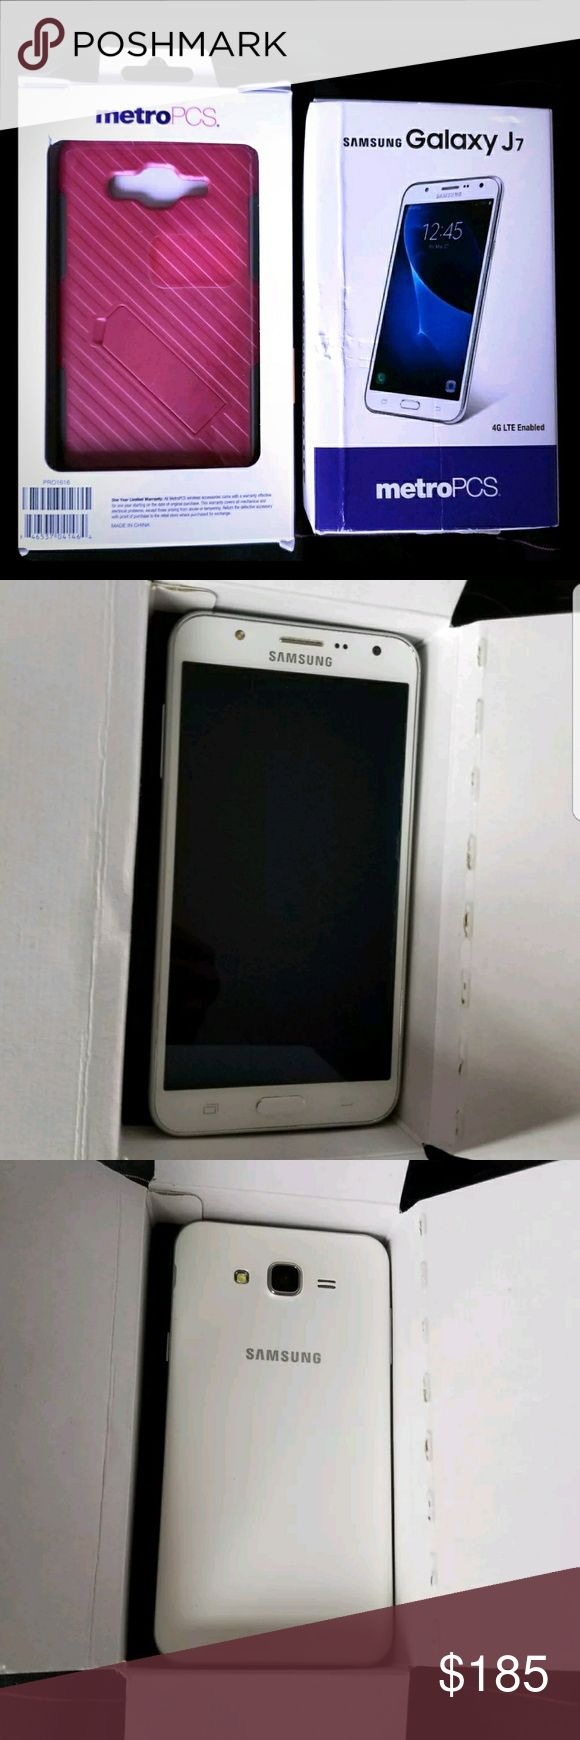 Unlocked Samsung Galaxy J7 phone and case bundle This phone is like new!! Promise.  Had for 1 month only! Selling because received new phone.  No water damage  Not refurbished Bought at metro pcs location! Metro pcs network initially but unlocked to use with any carrier Case is original very reliable $40 from metro pcs store Case has some sign of wear Phone was always protected and never used without case samsung Other